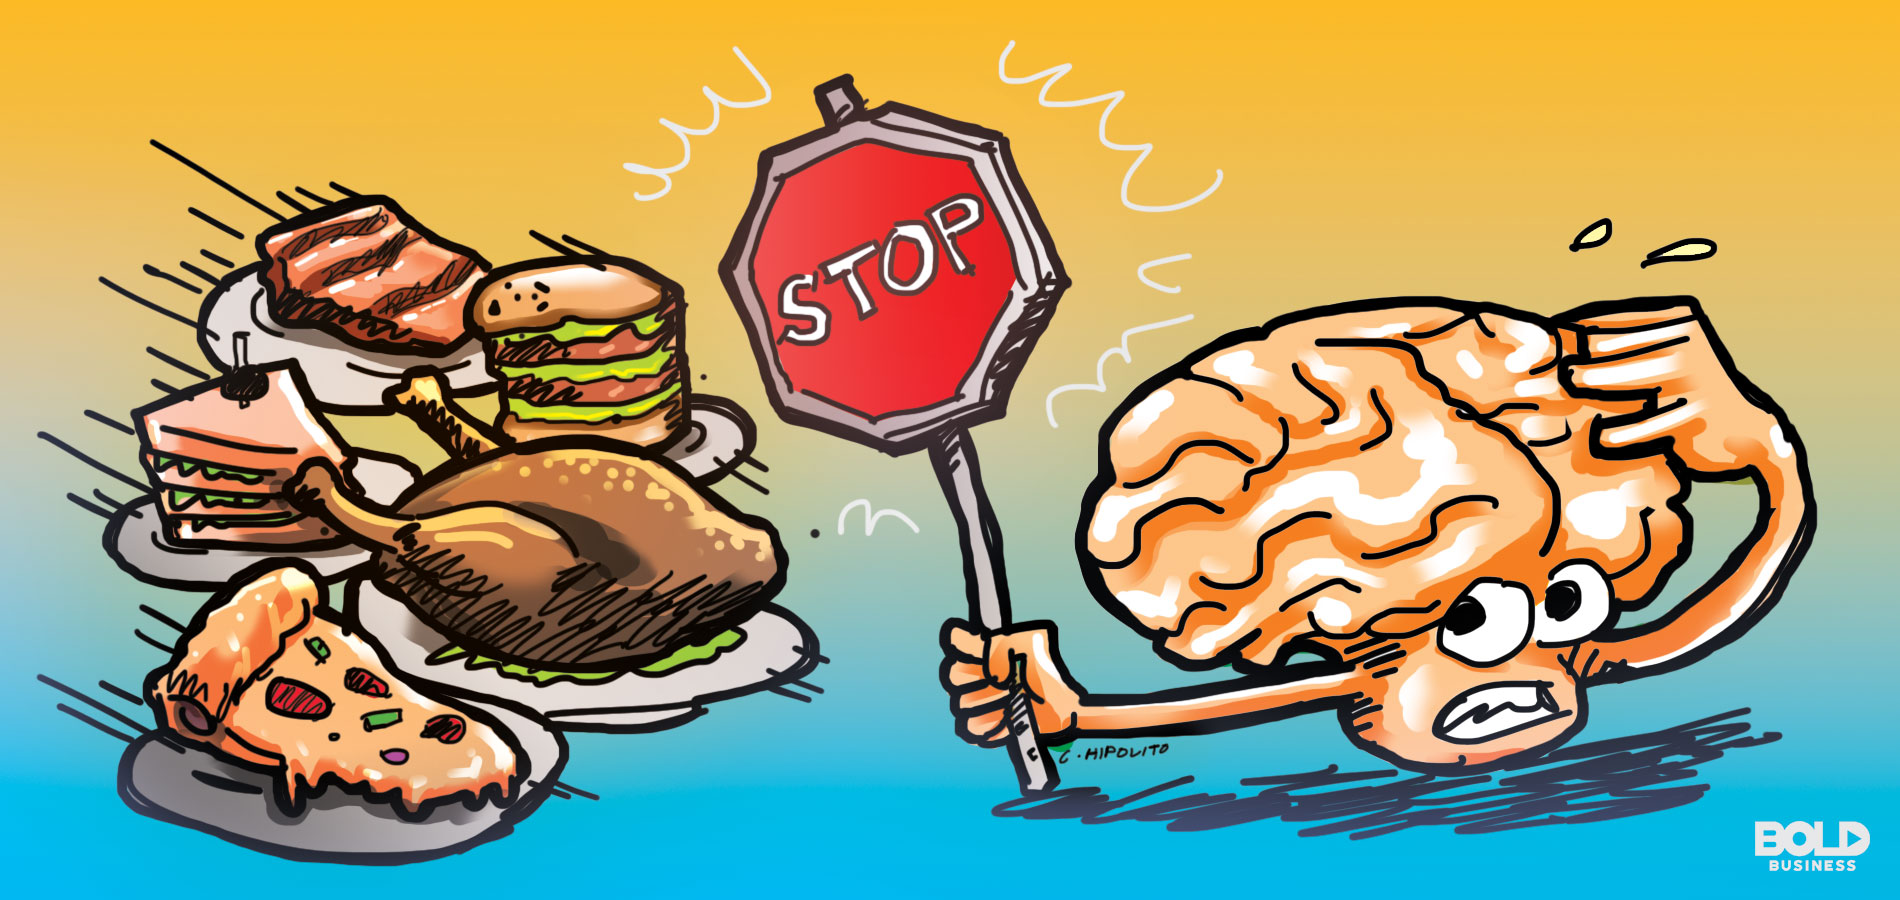 cartoon showing various kinds of food chasing a brain that's holding a stop sign toward their direction